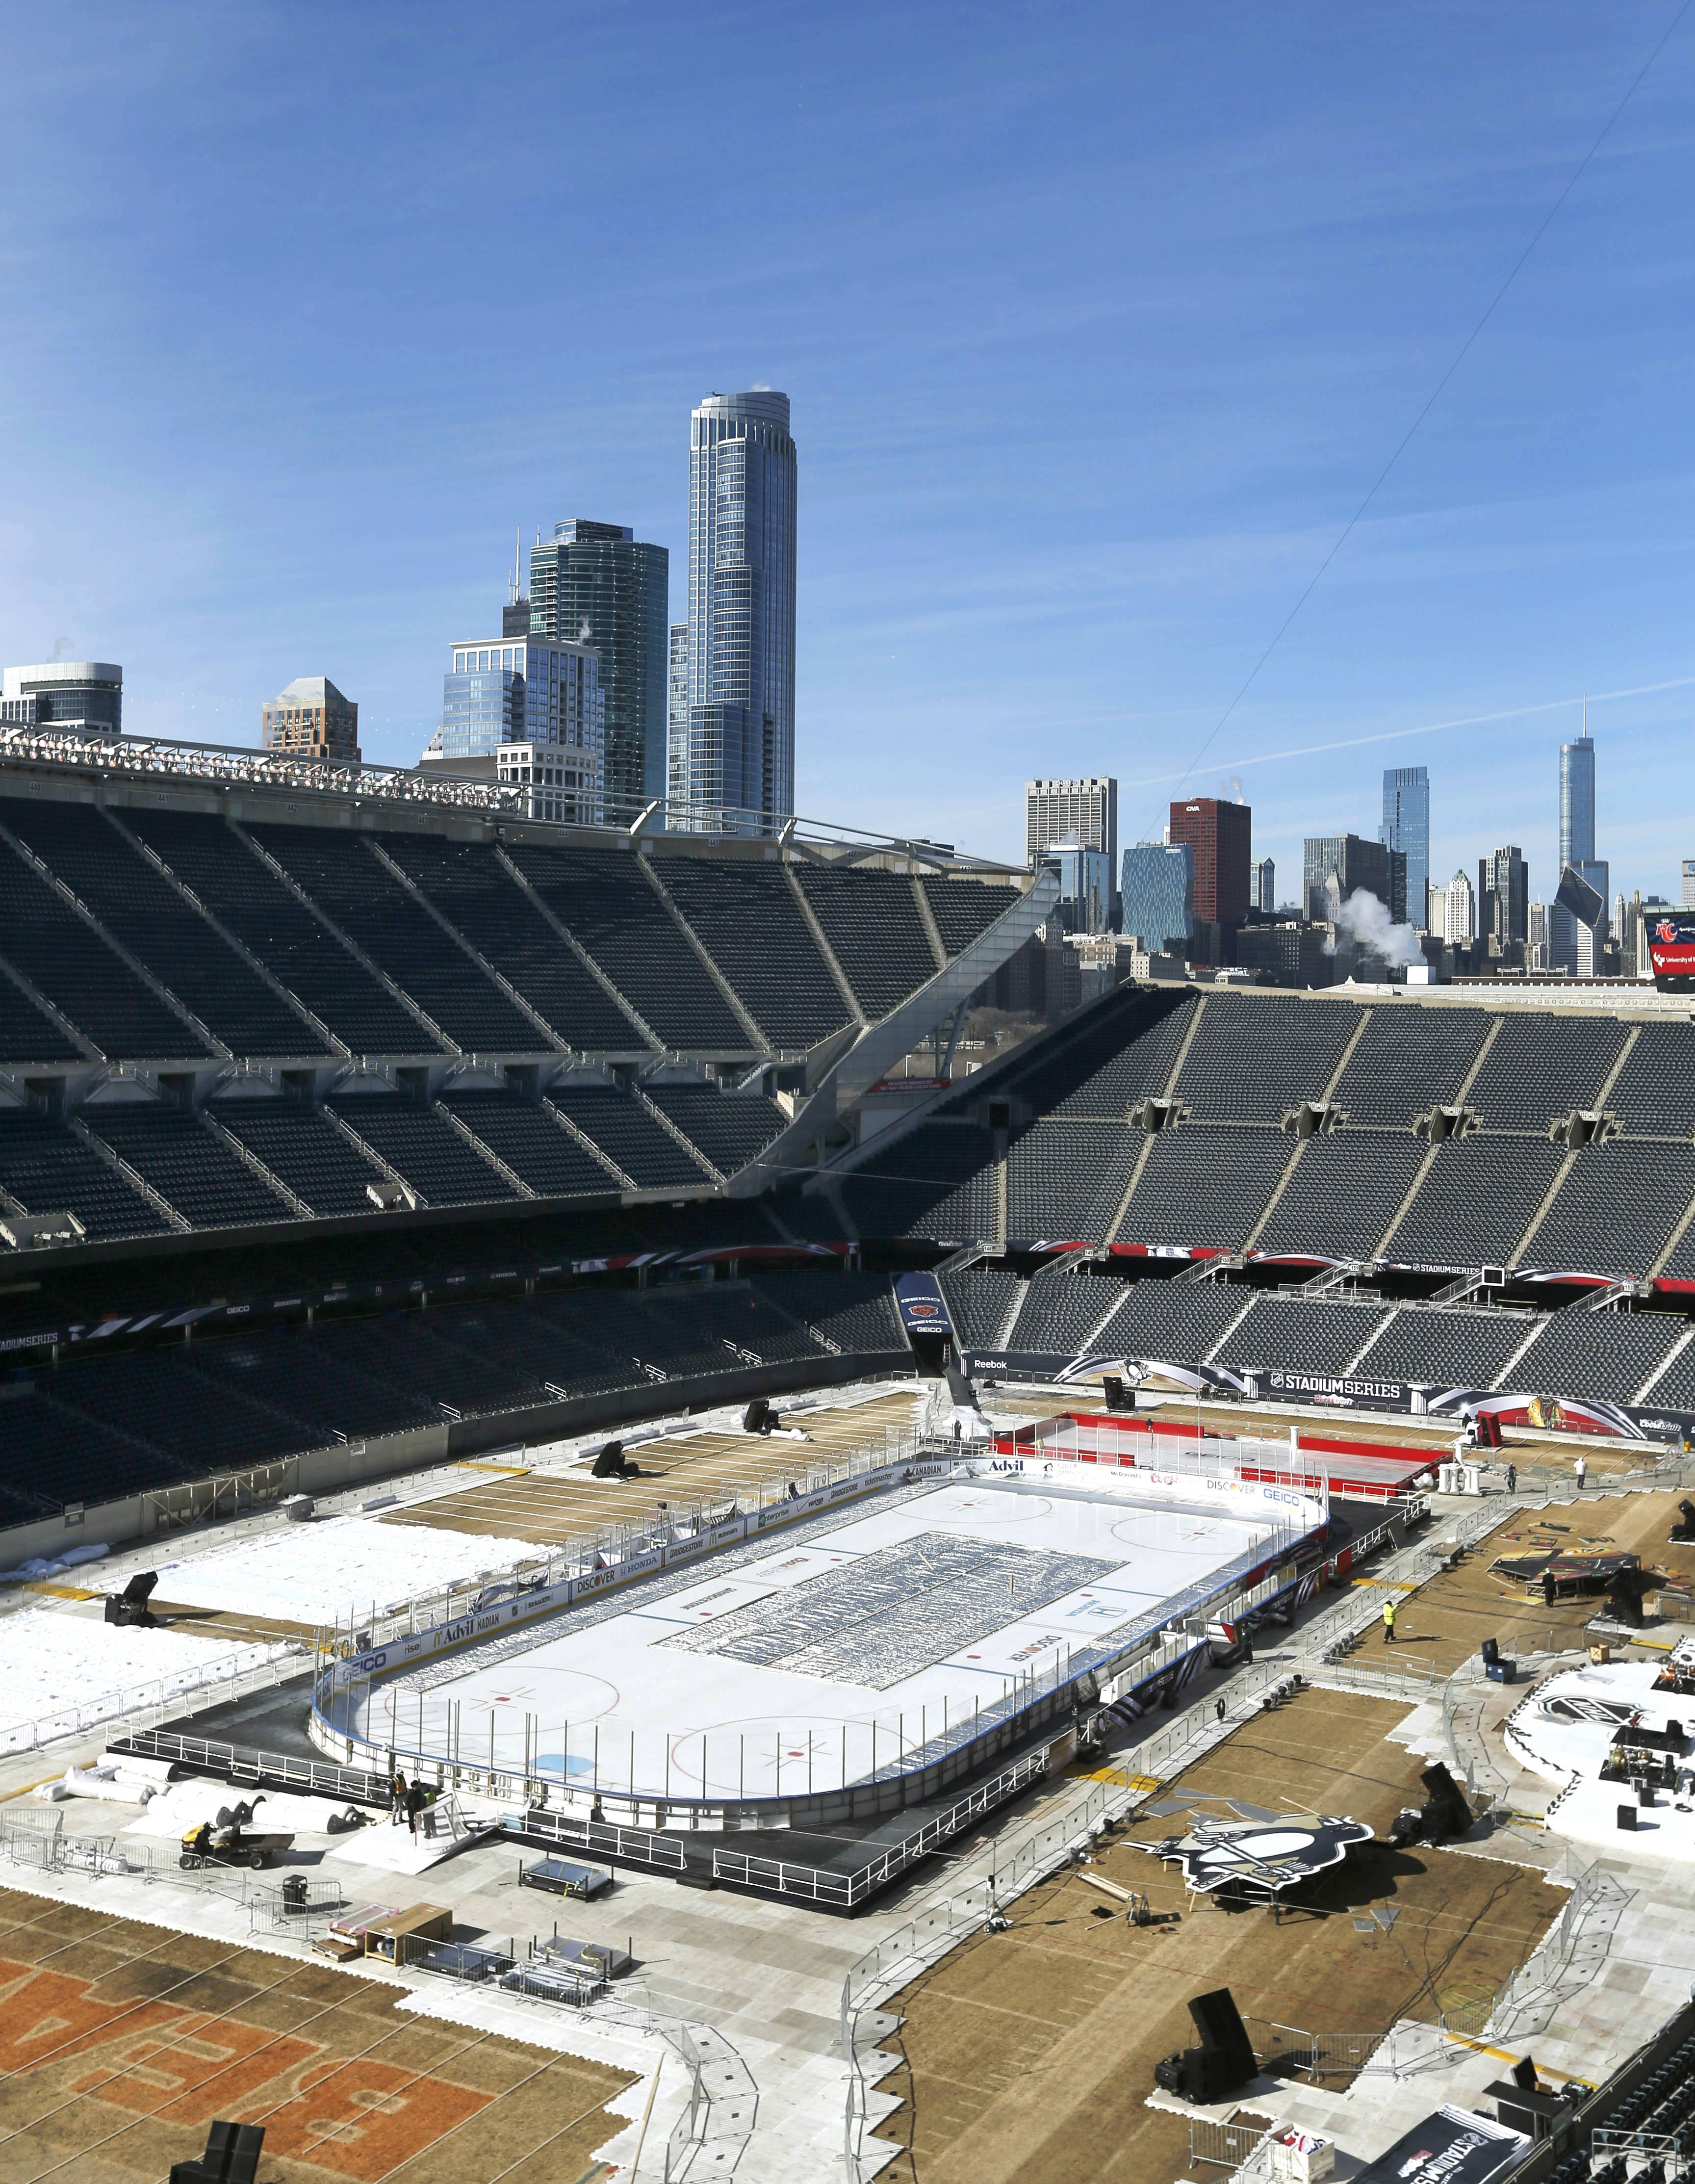 With the downtown skyscrapers as a backdrop, Soldier Field has been transformed into anoutdoor ice palace for today's Stadium Series game between the Hawks and Penguins.